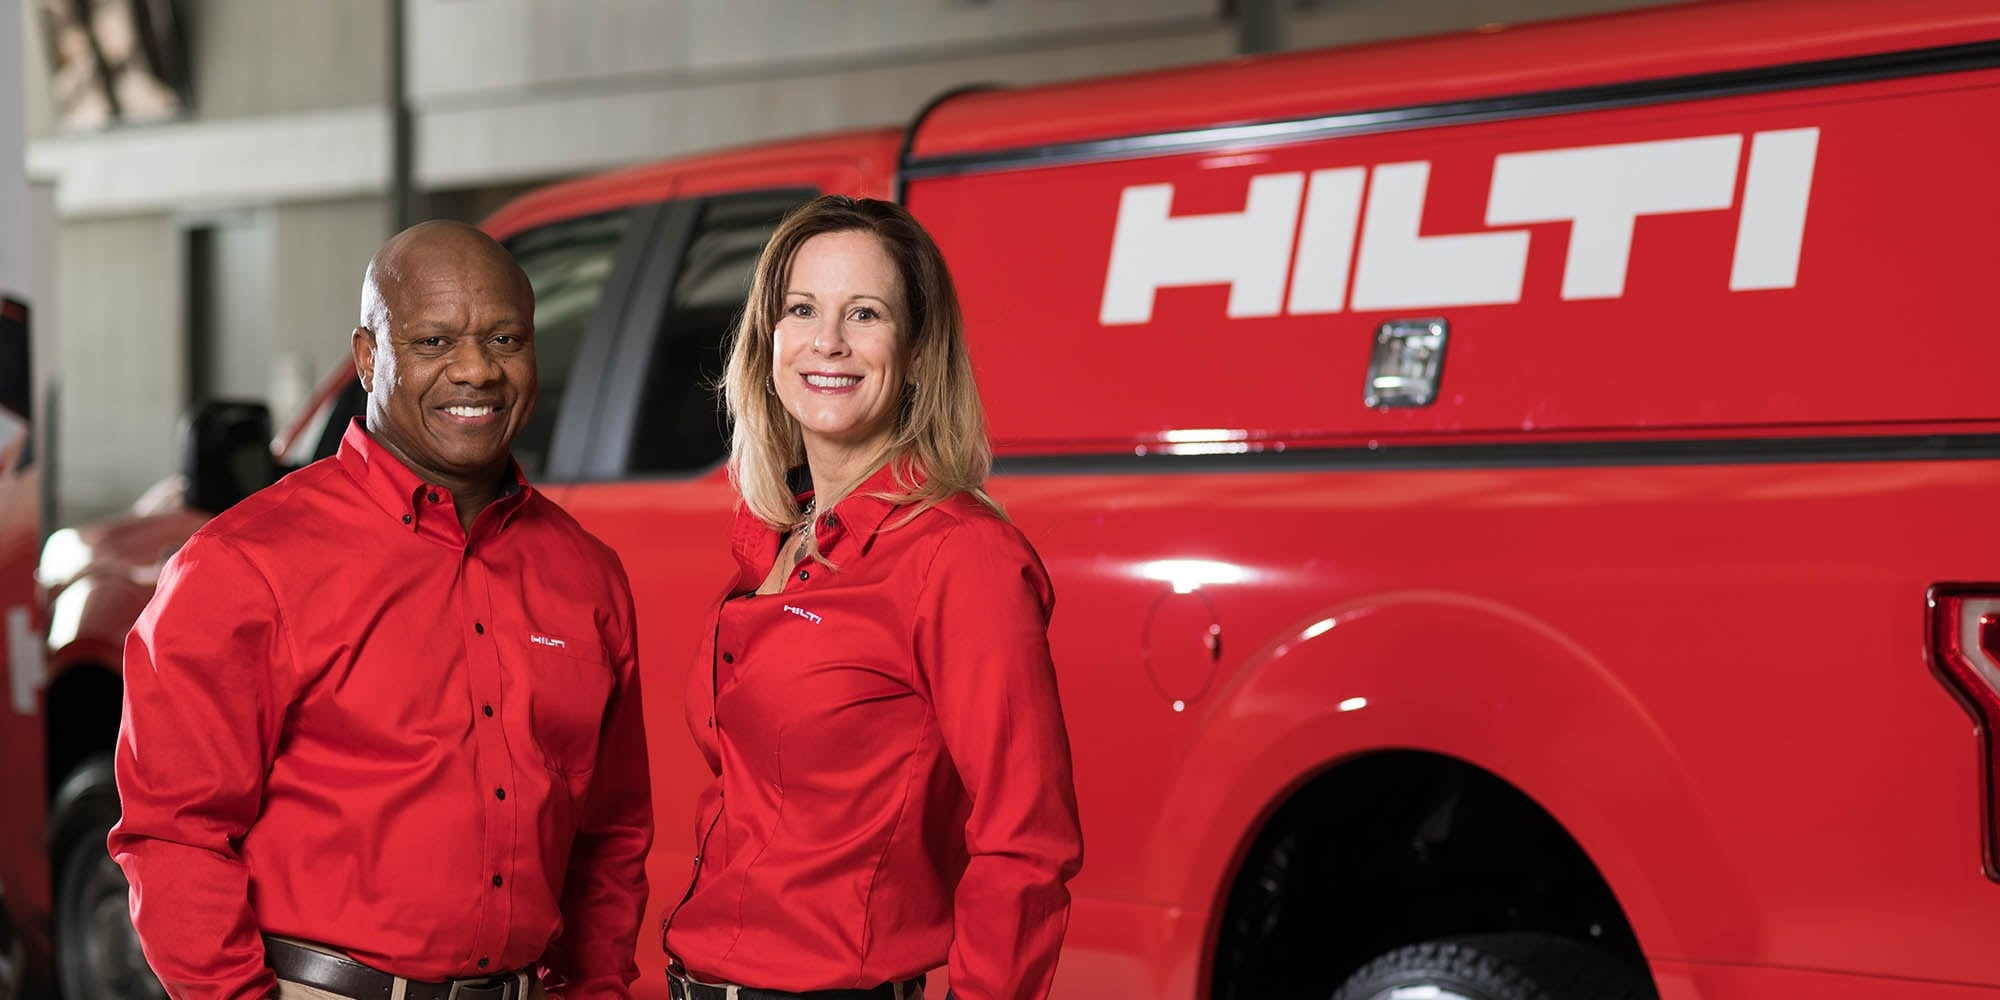 Hilti vans and account managers on the jobsite when and where you need them.